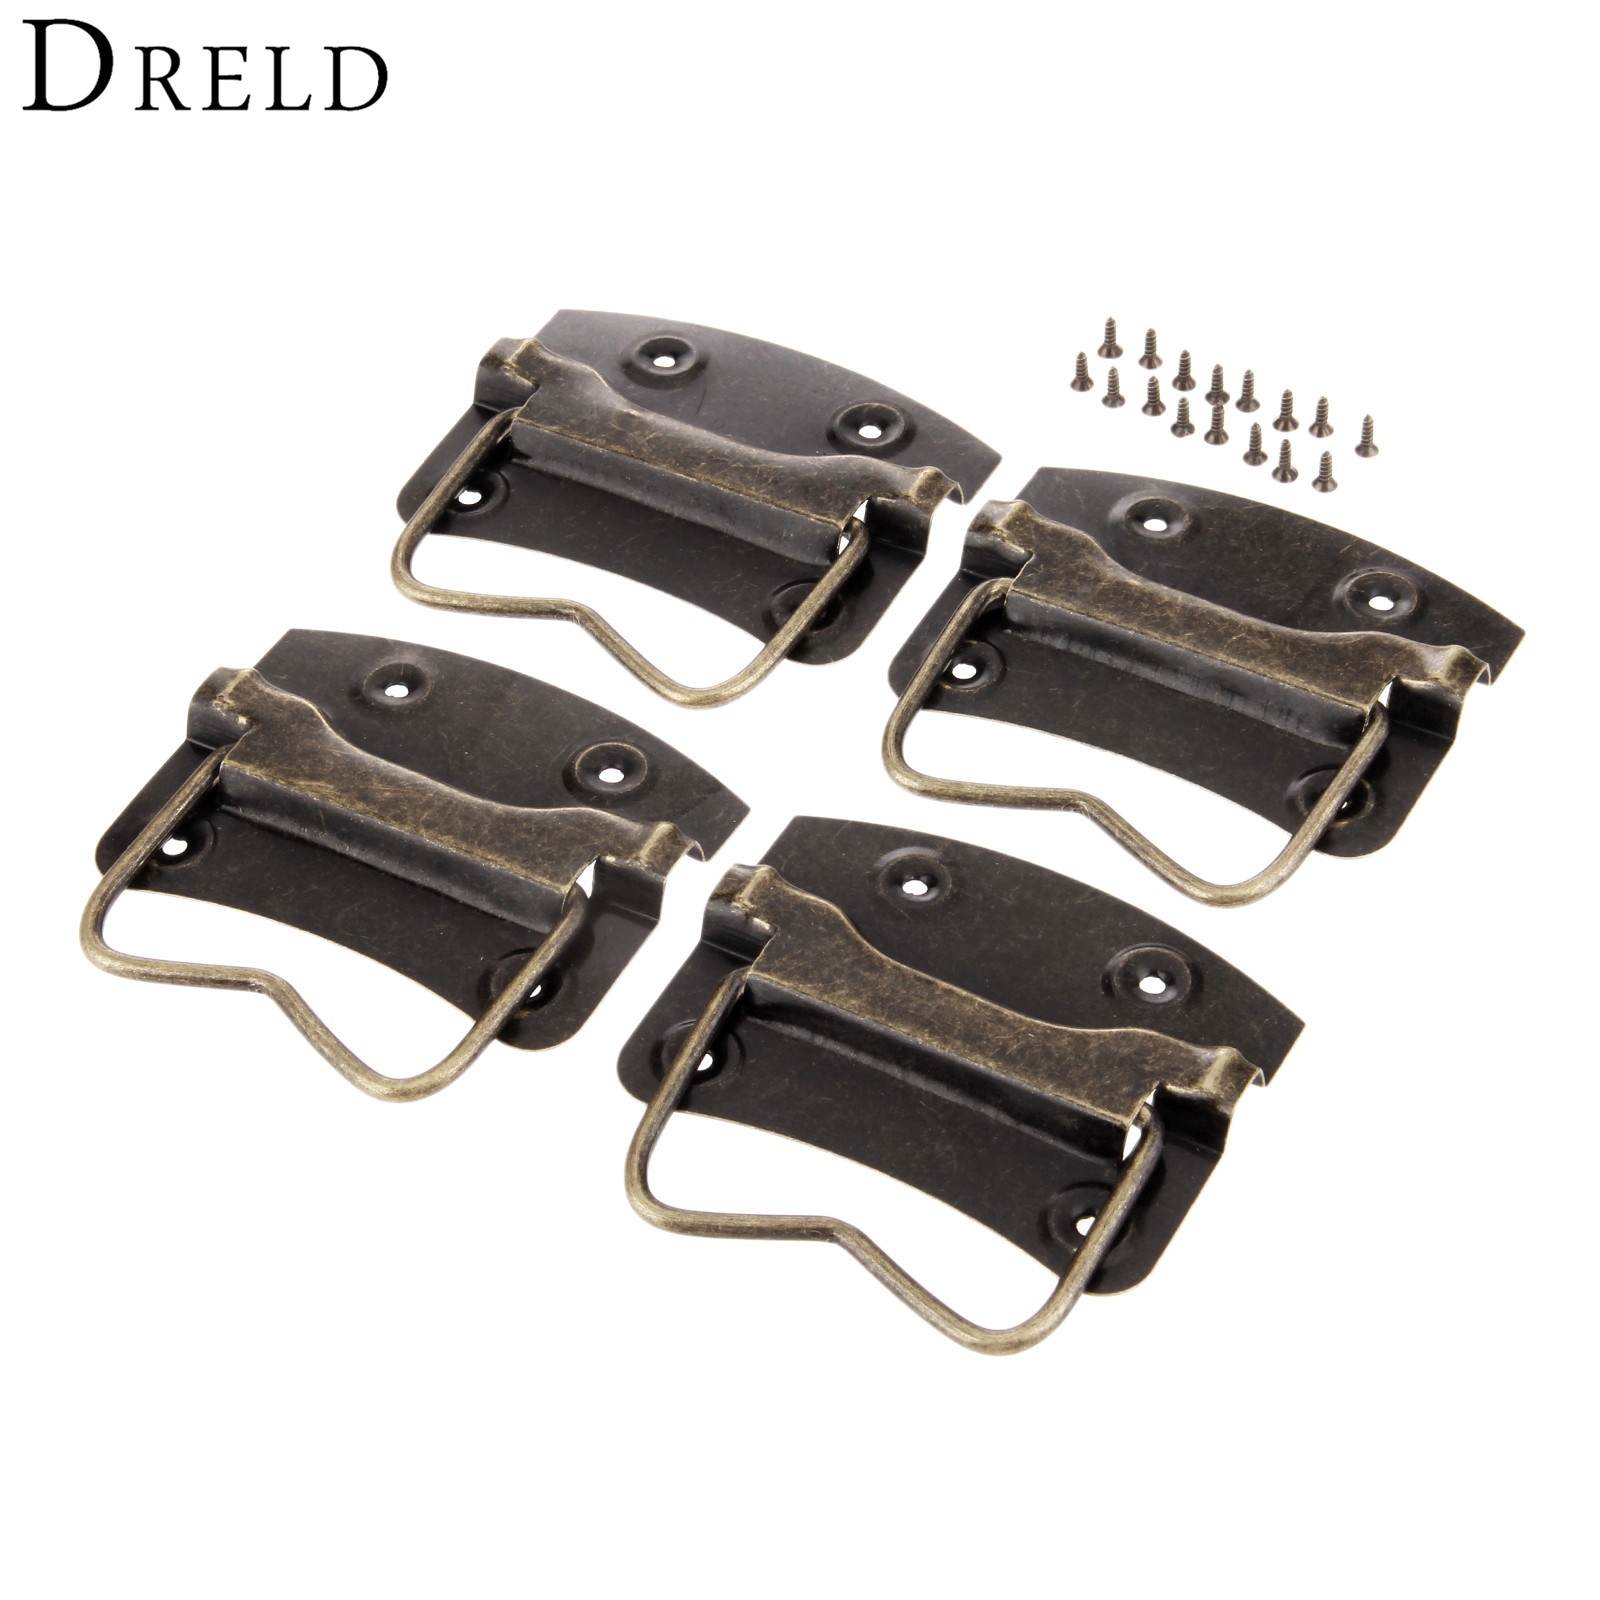 DRELD 4Pc Antique Furniture Handles Wardrobe Door Pulls Dresser Drawer Handles Kitchen Cupboard Handle Cabinet Knobs and Handles